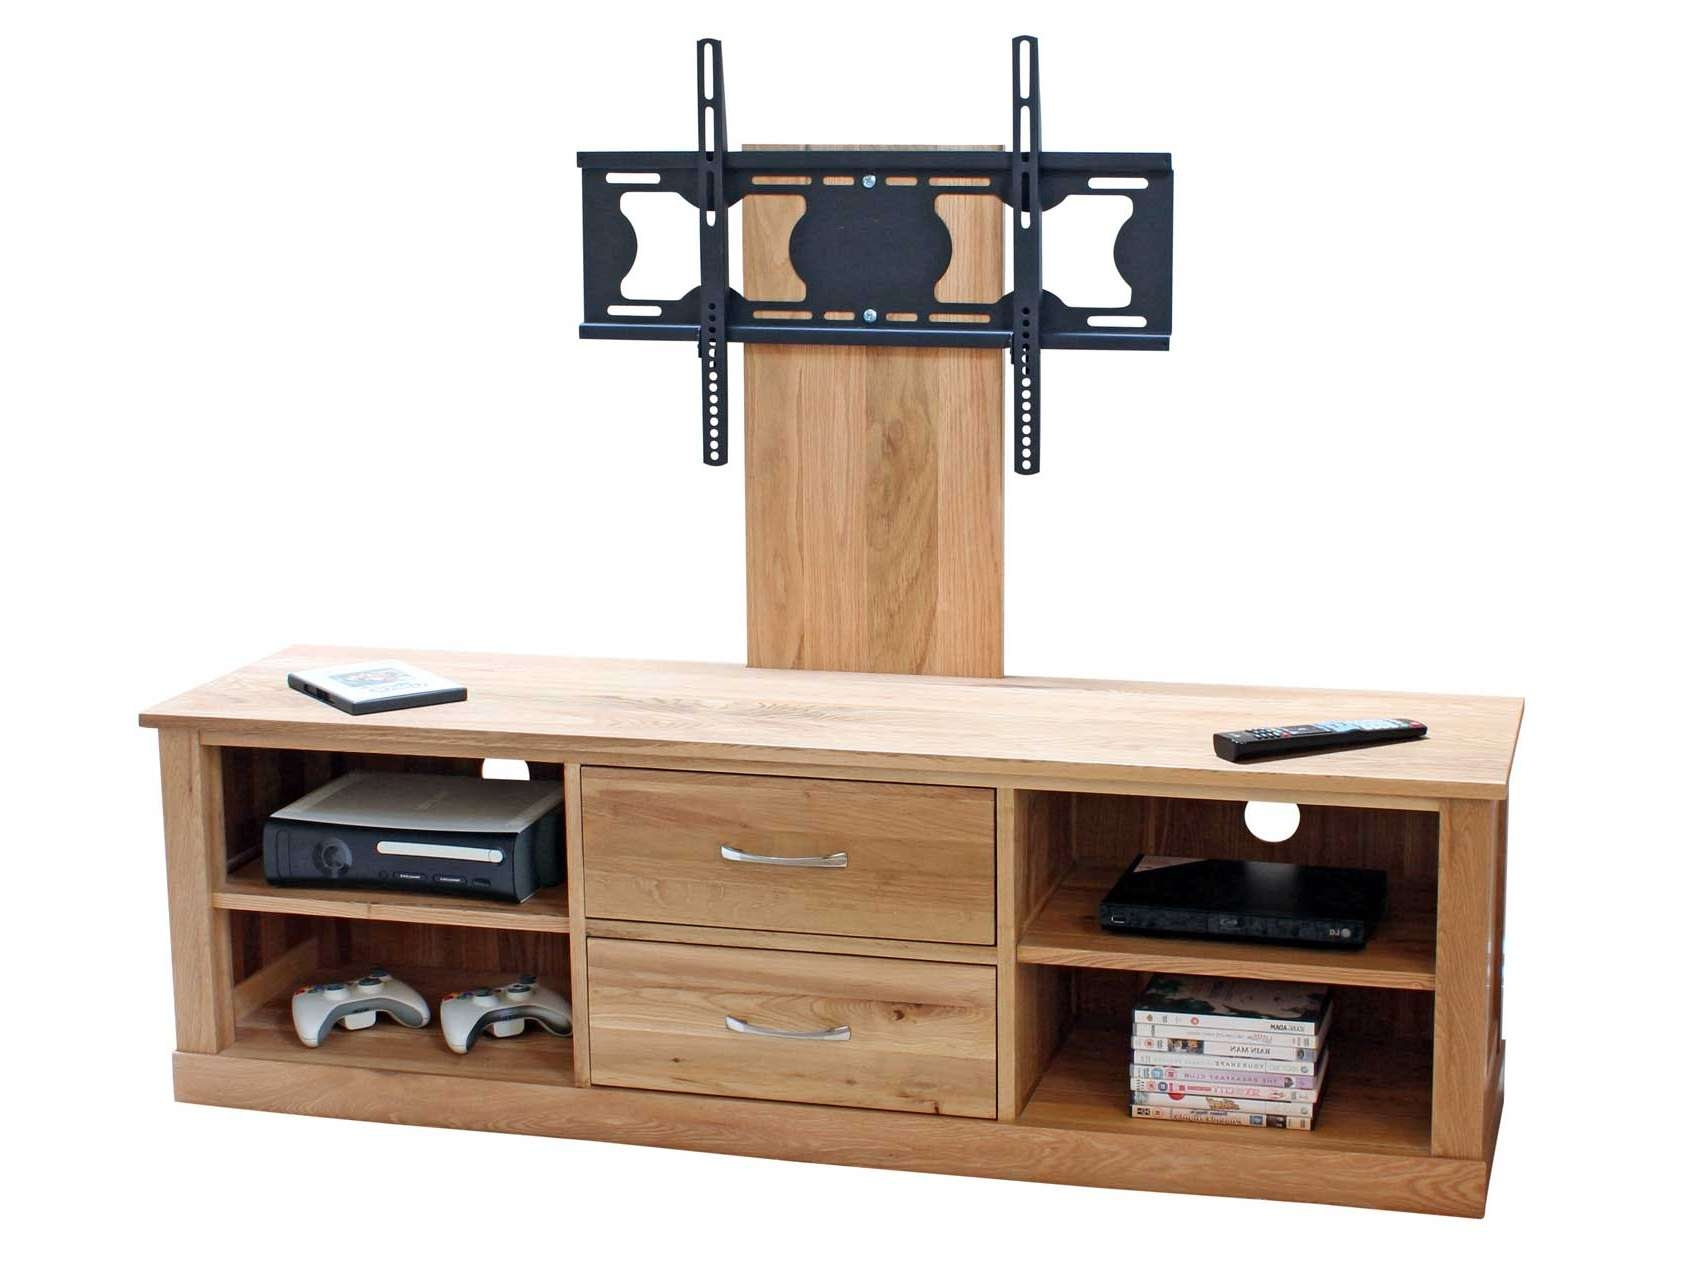 Classic Oak Television Unit With Mount Hampshire Furniture 3 Throughout Oak Tv Stands For Flat Screens (View 4 of 15)